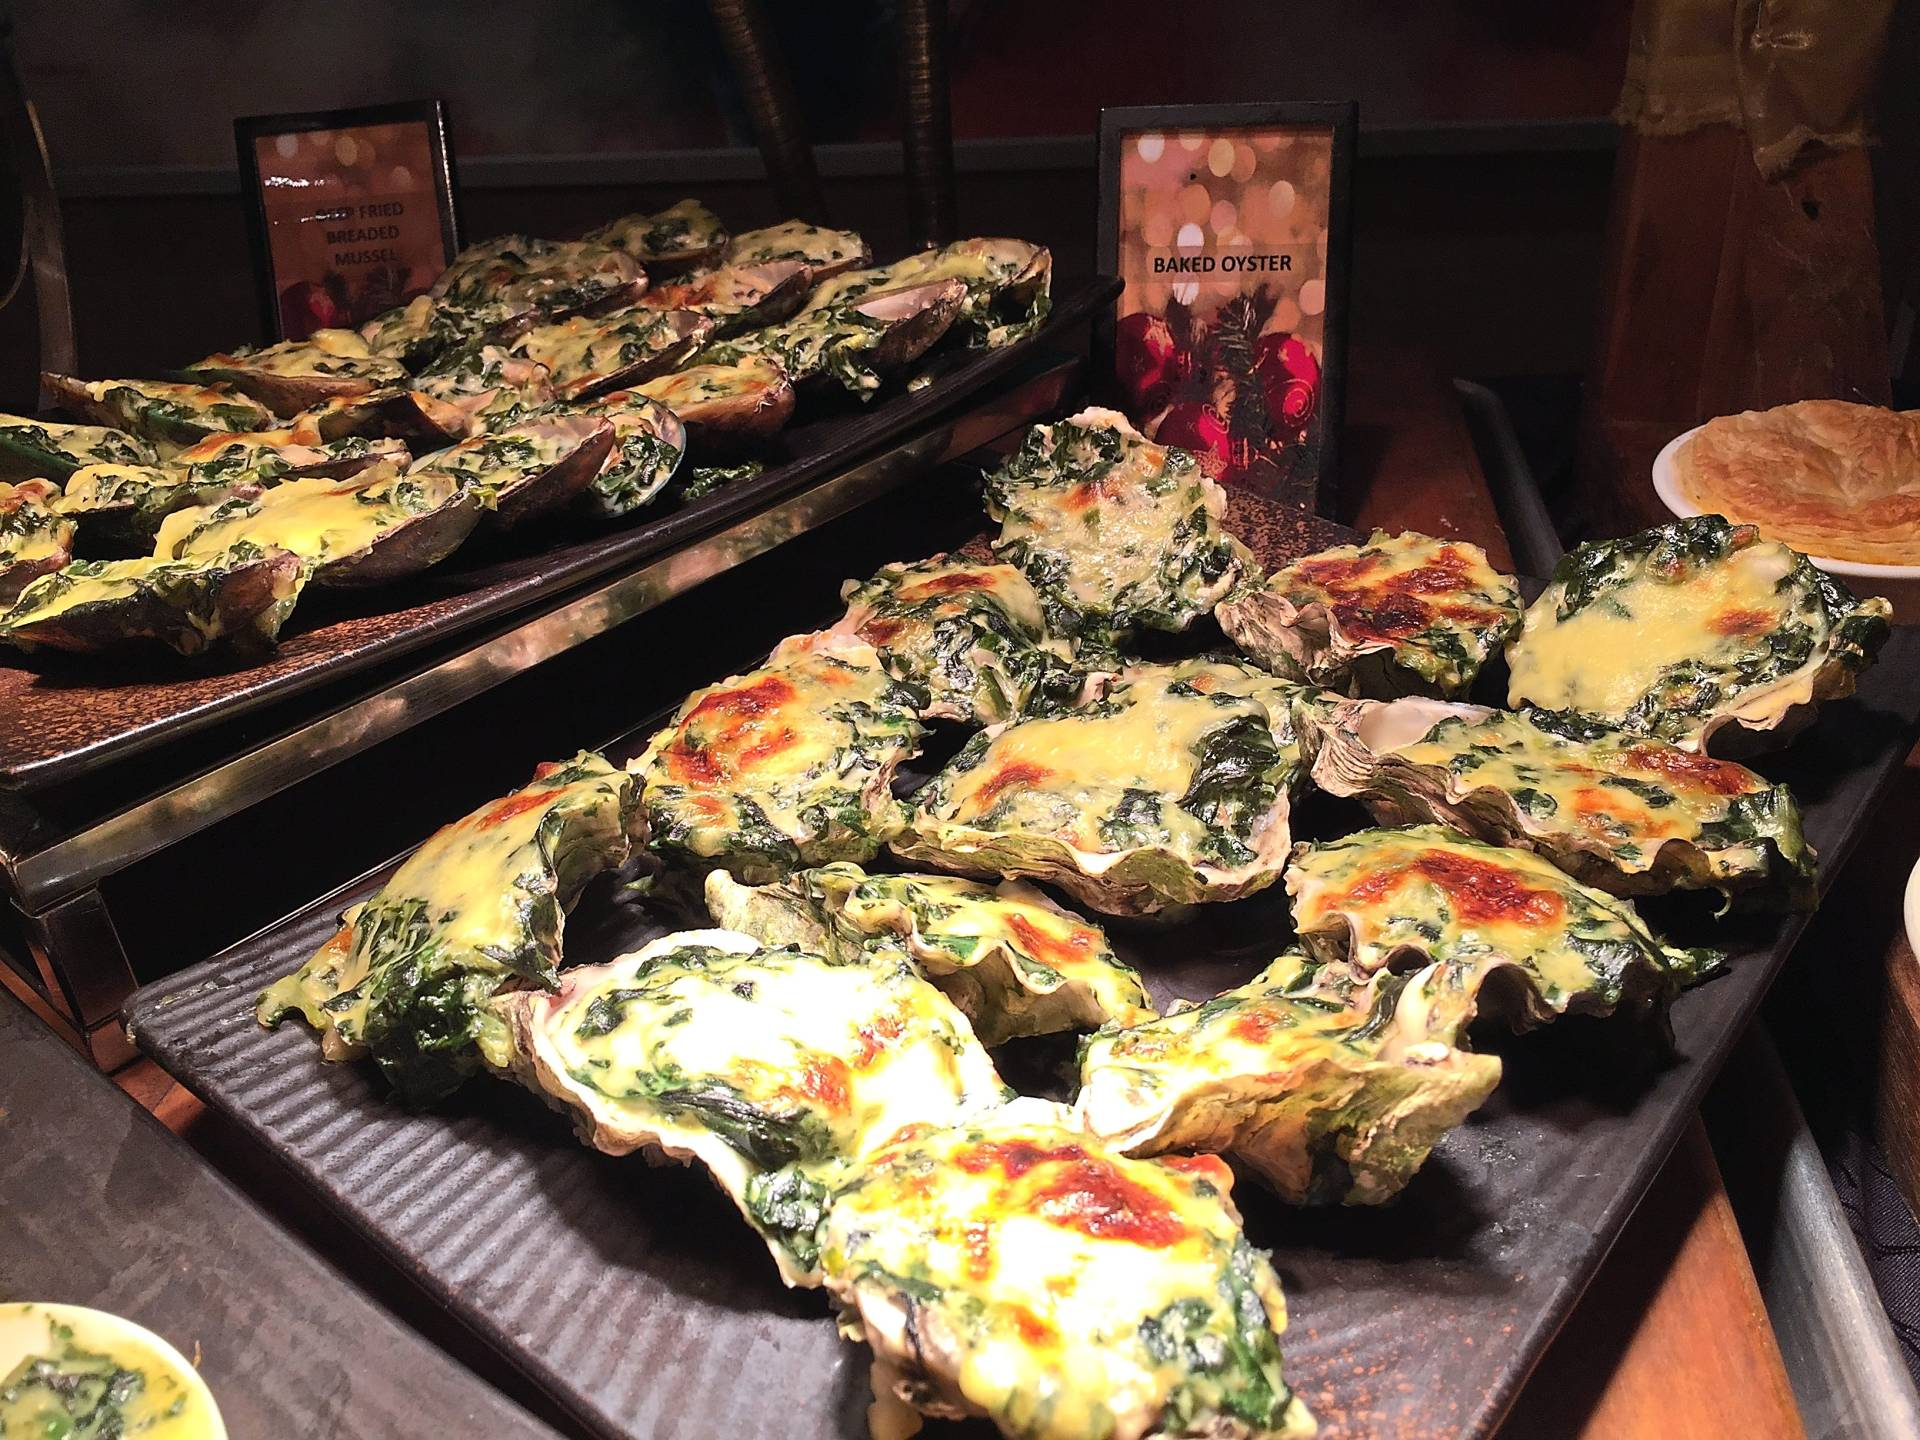 A wide range of gratinated seafood such as prawns, lobsters, oysters and mussels are among the Christmas highlights.